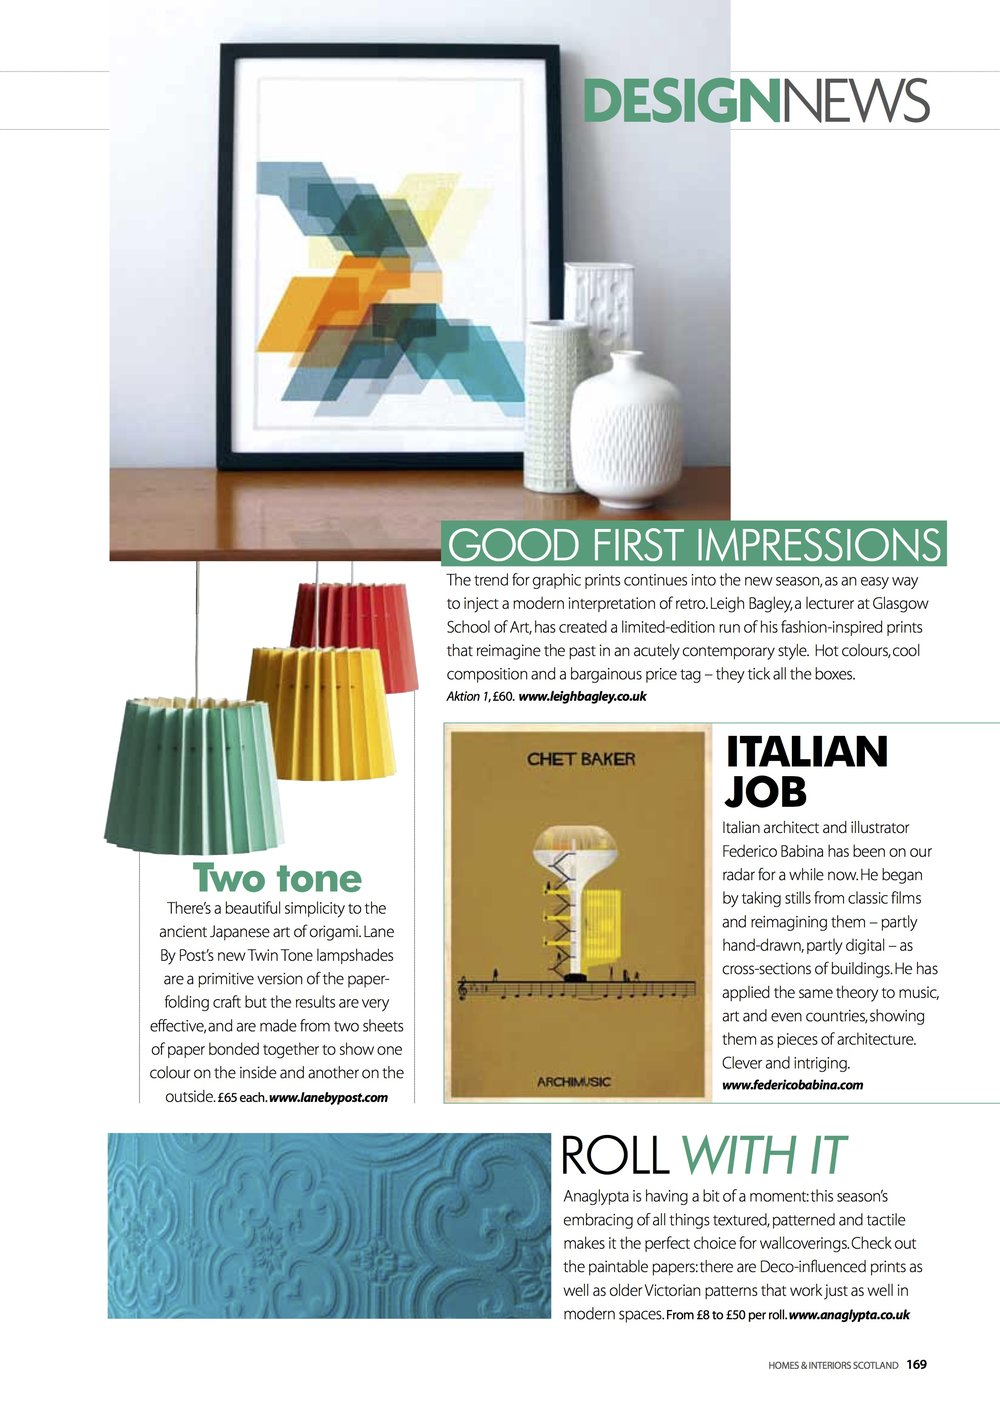 Homes & Interiors Scotland, September 2014,  Lane Twin Tone Lampshades